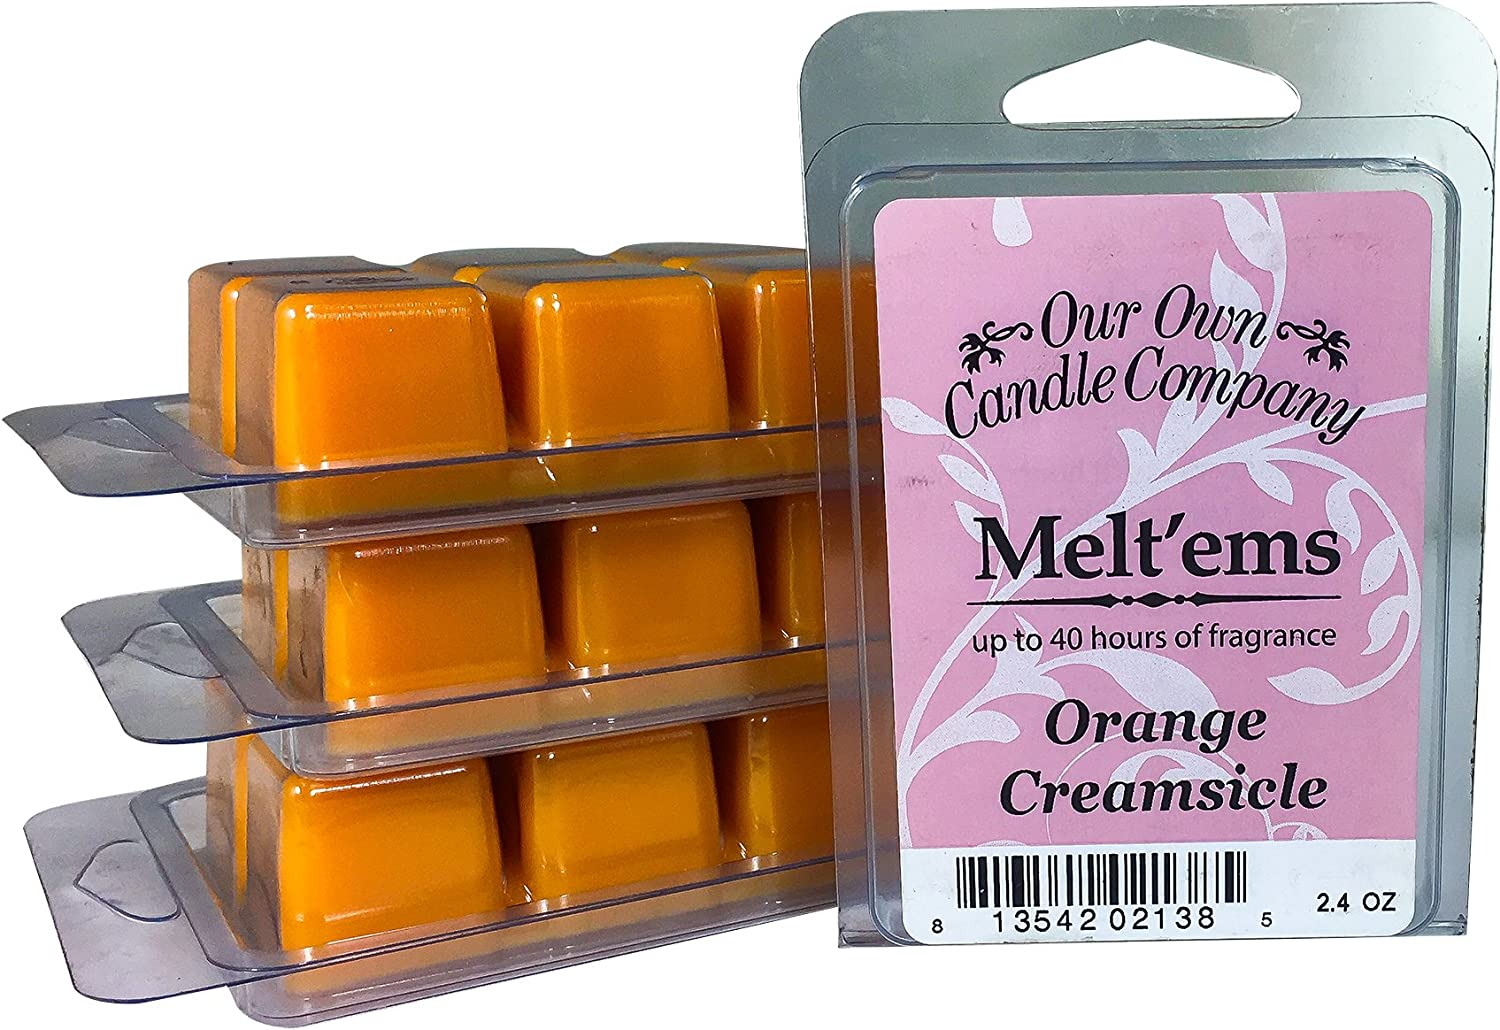 Our Own Candle Company Premium Wax Melt, Orange Creamsicle, 6 Cubes, 2.4 oz (4 Pack)